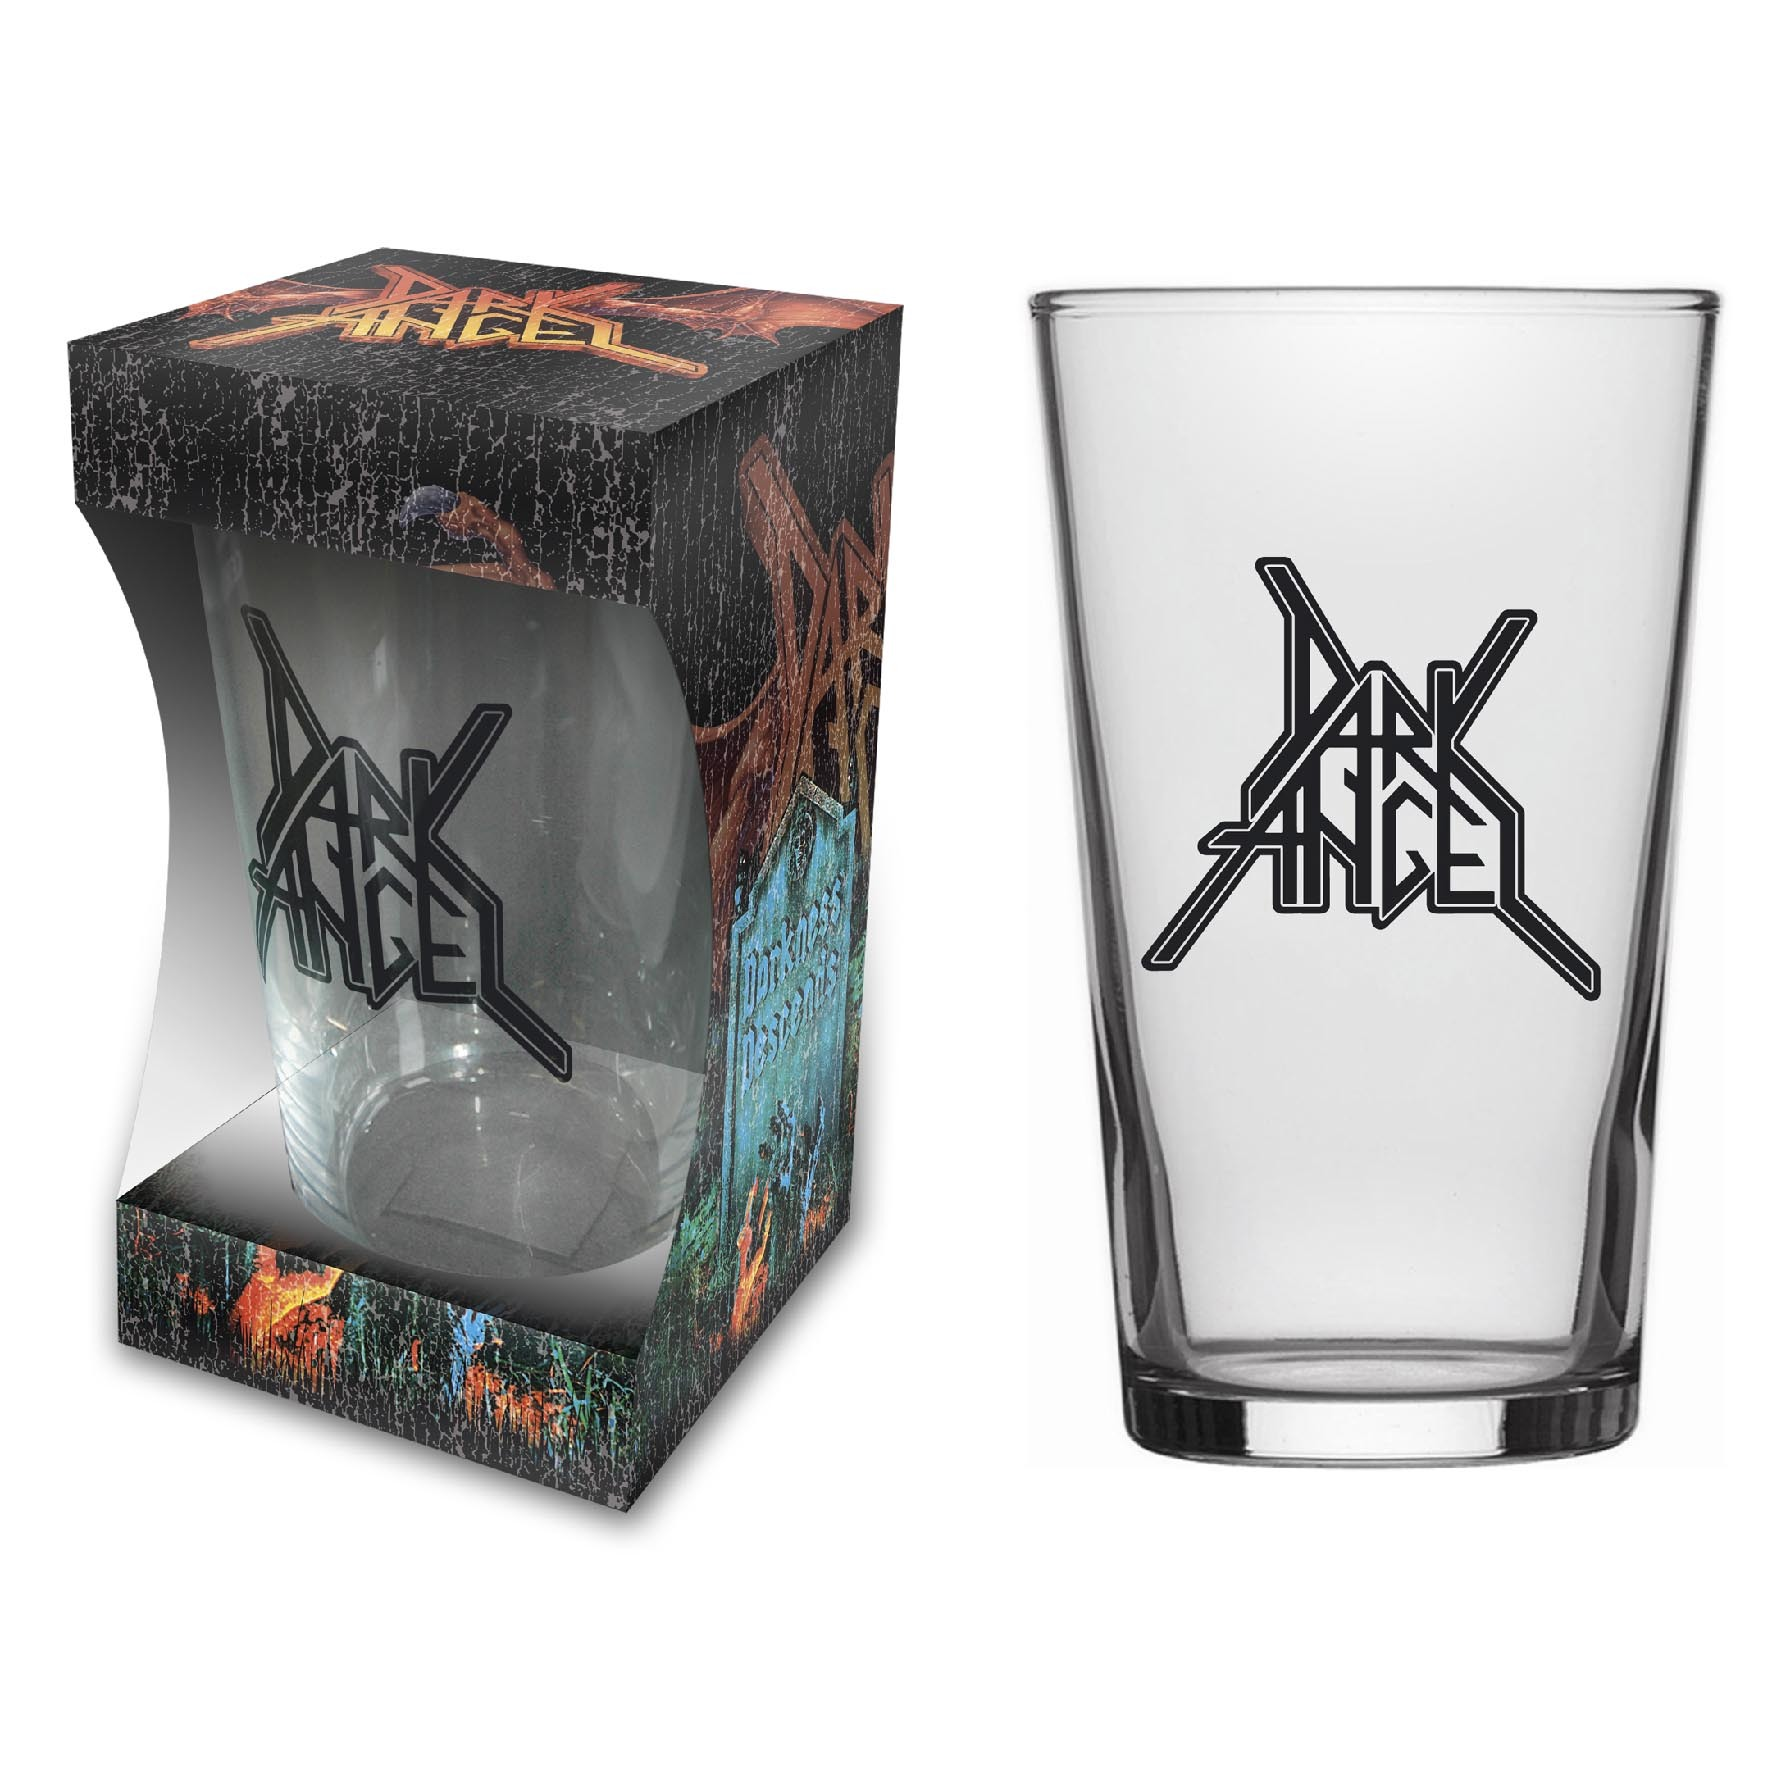 Dark Angel Logo Beer Glass.jpg